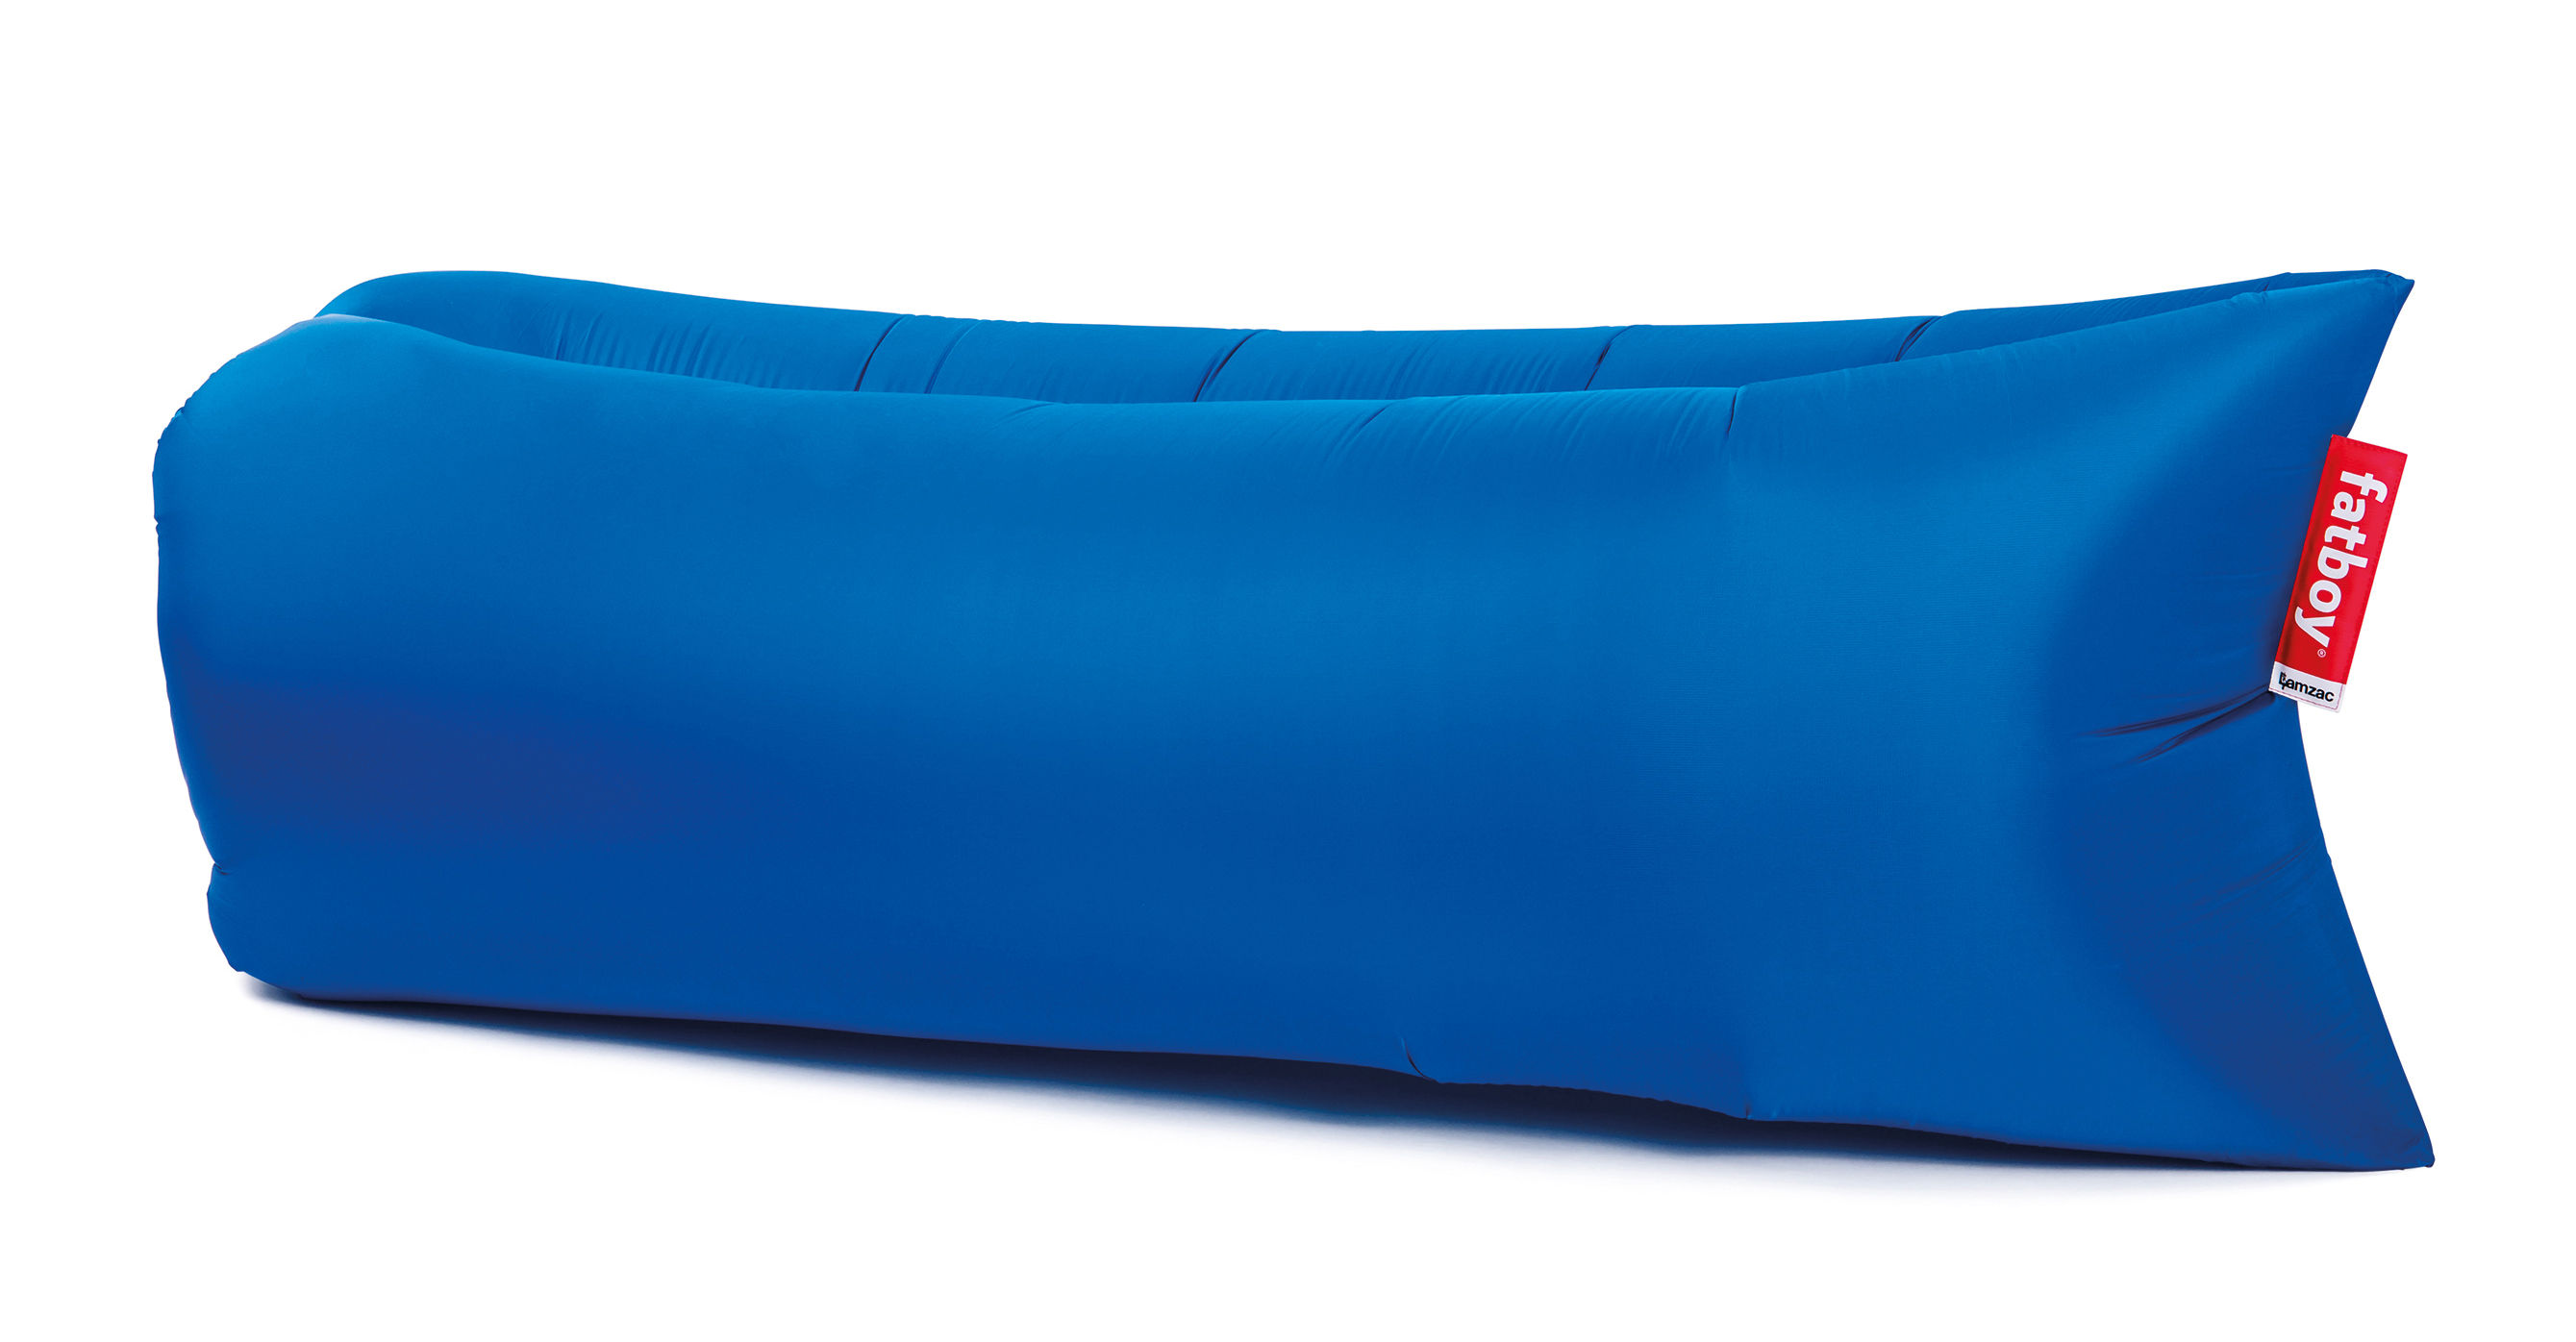 Outdoor - Sun Loungers & Hammocks - Lamzac the Original 2.0 Inflatable pouf - Inflatable - L 200 cm by Fatboy - Petrol blue - Nylon